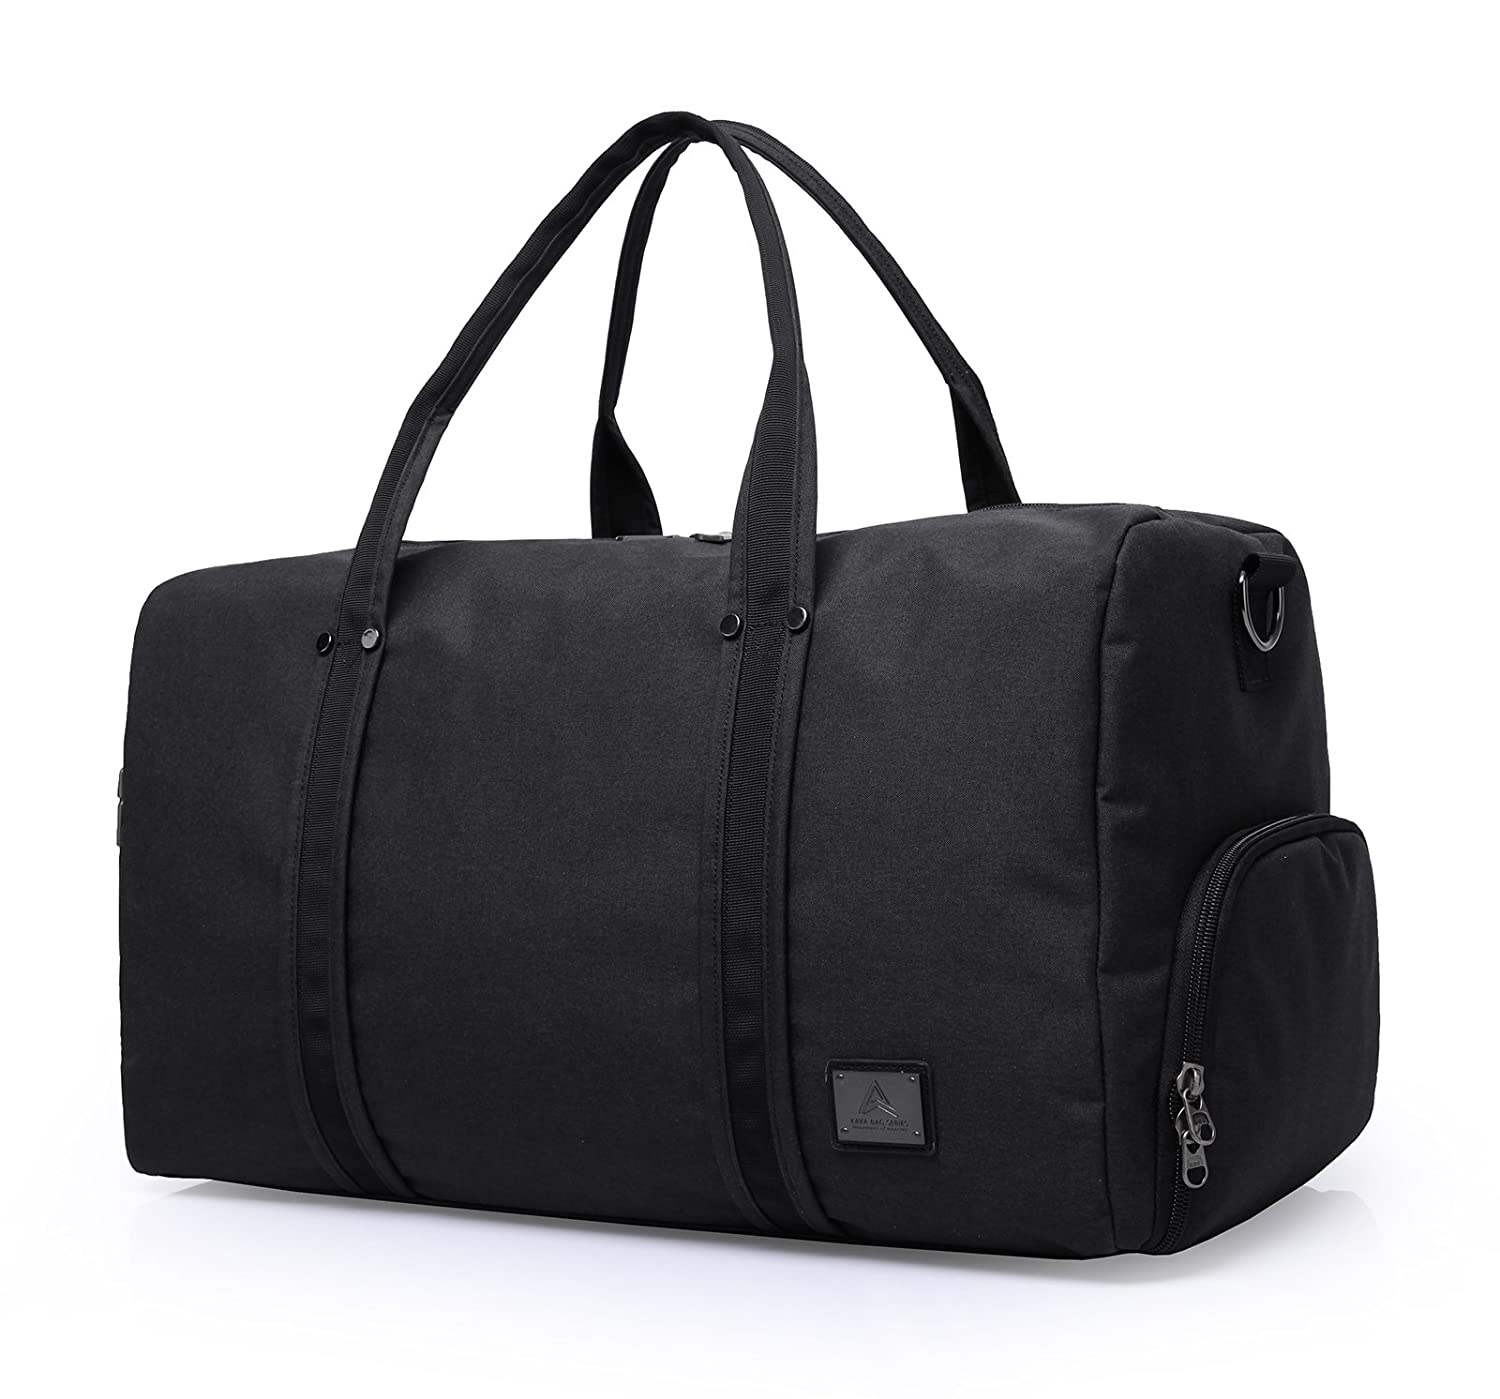 Duffle Bag,75 L Large Capacity Canvas Duffel Bag For Women & Men.Luggage Bag Fit For Gym Sport Travel Weekend by Yenyoh